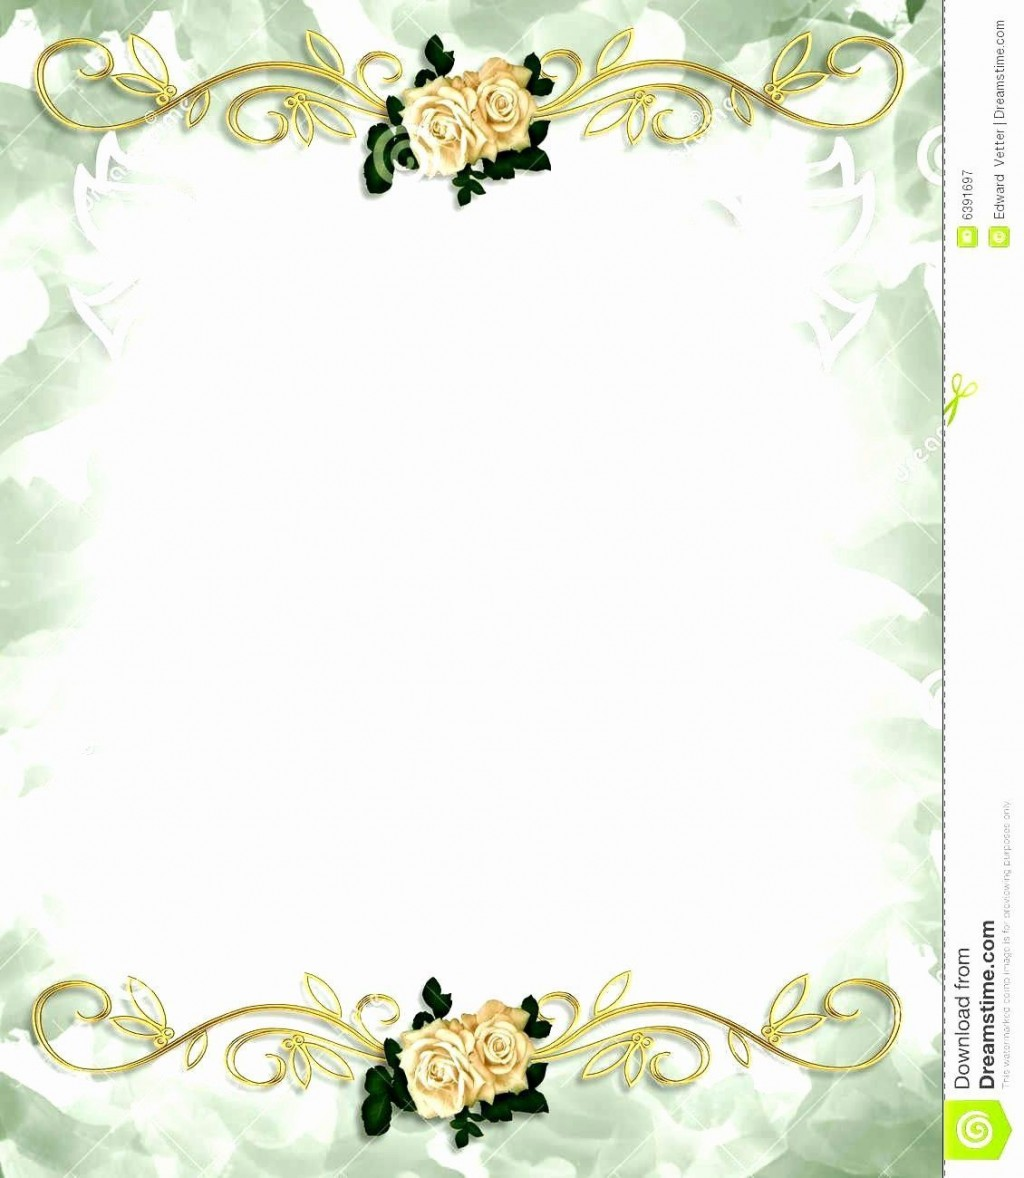 001 Top Free Download Invitation Card Template Highest Clarity  Templates Indian Wedding Design Software PngLarge